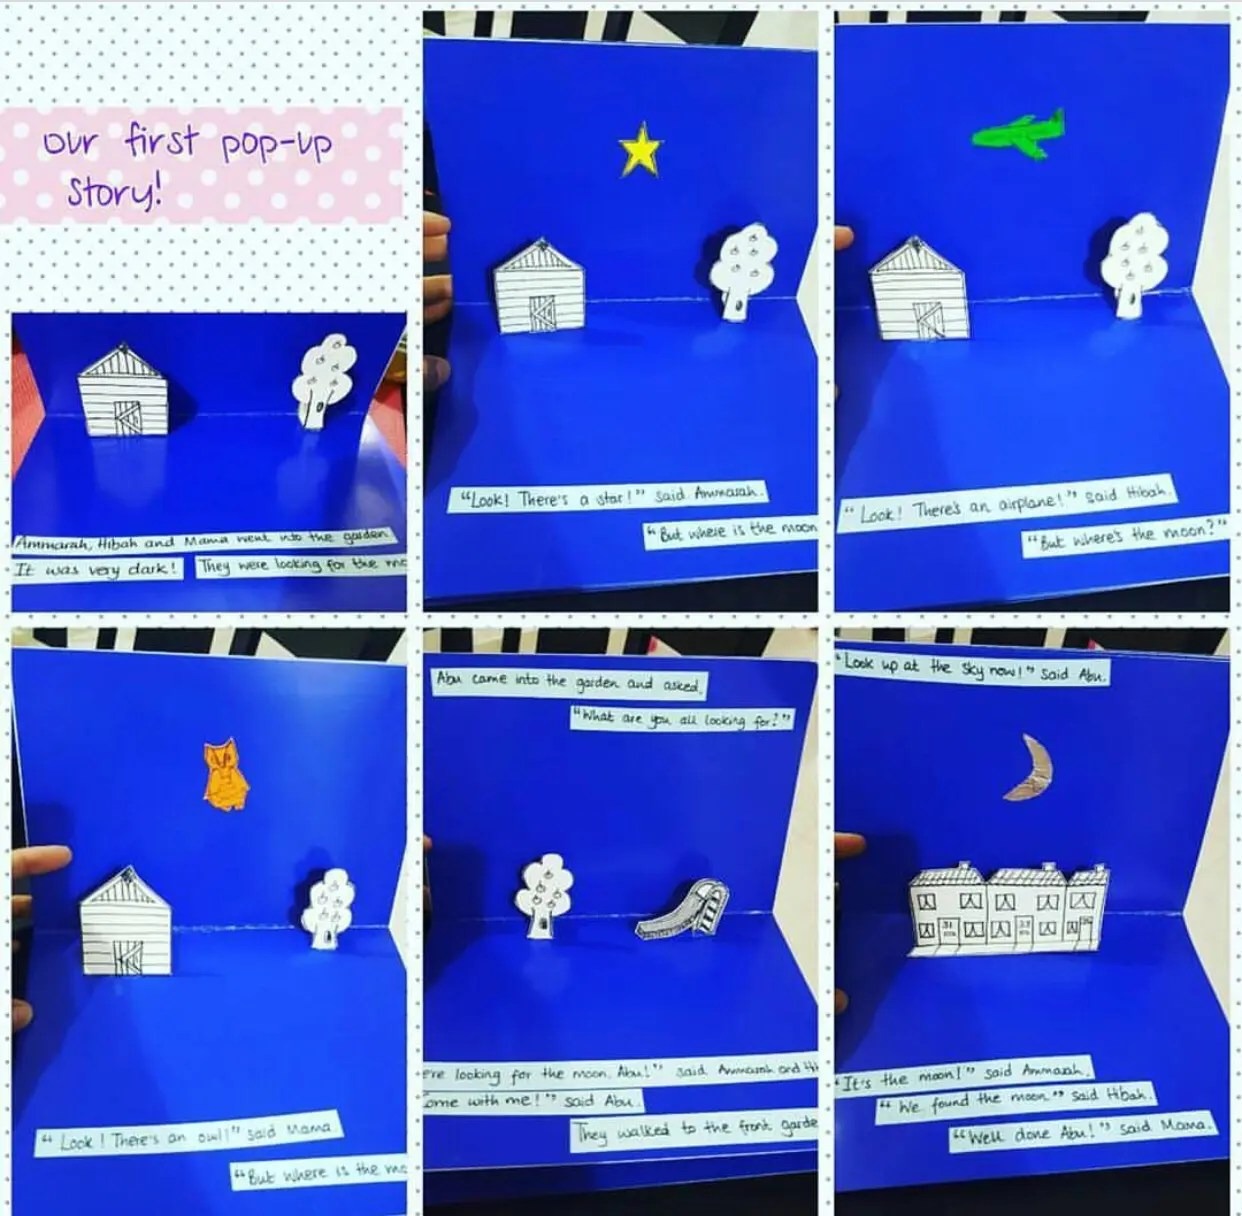 How to make your own Personalised Popup story for Ramadan!